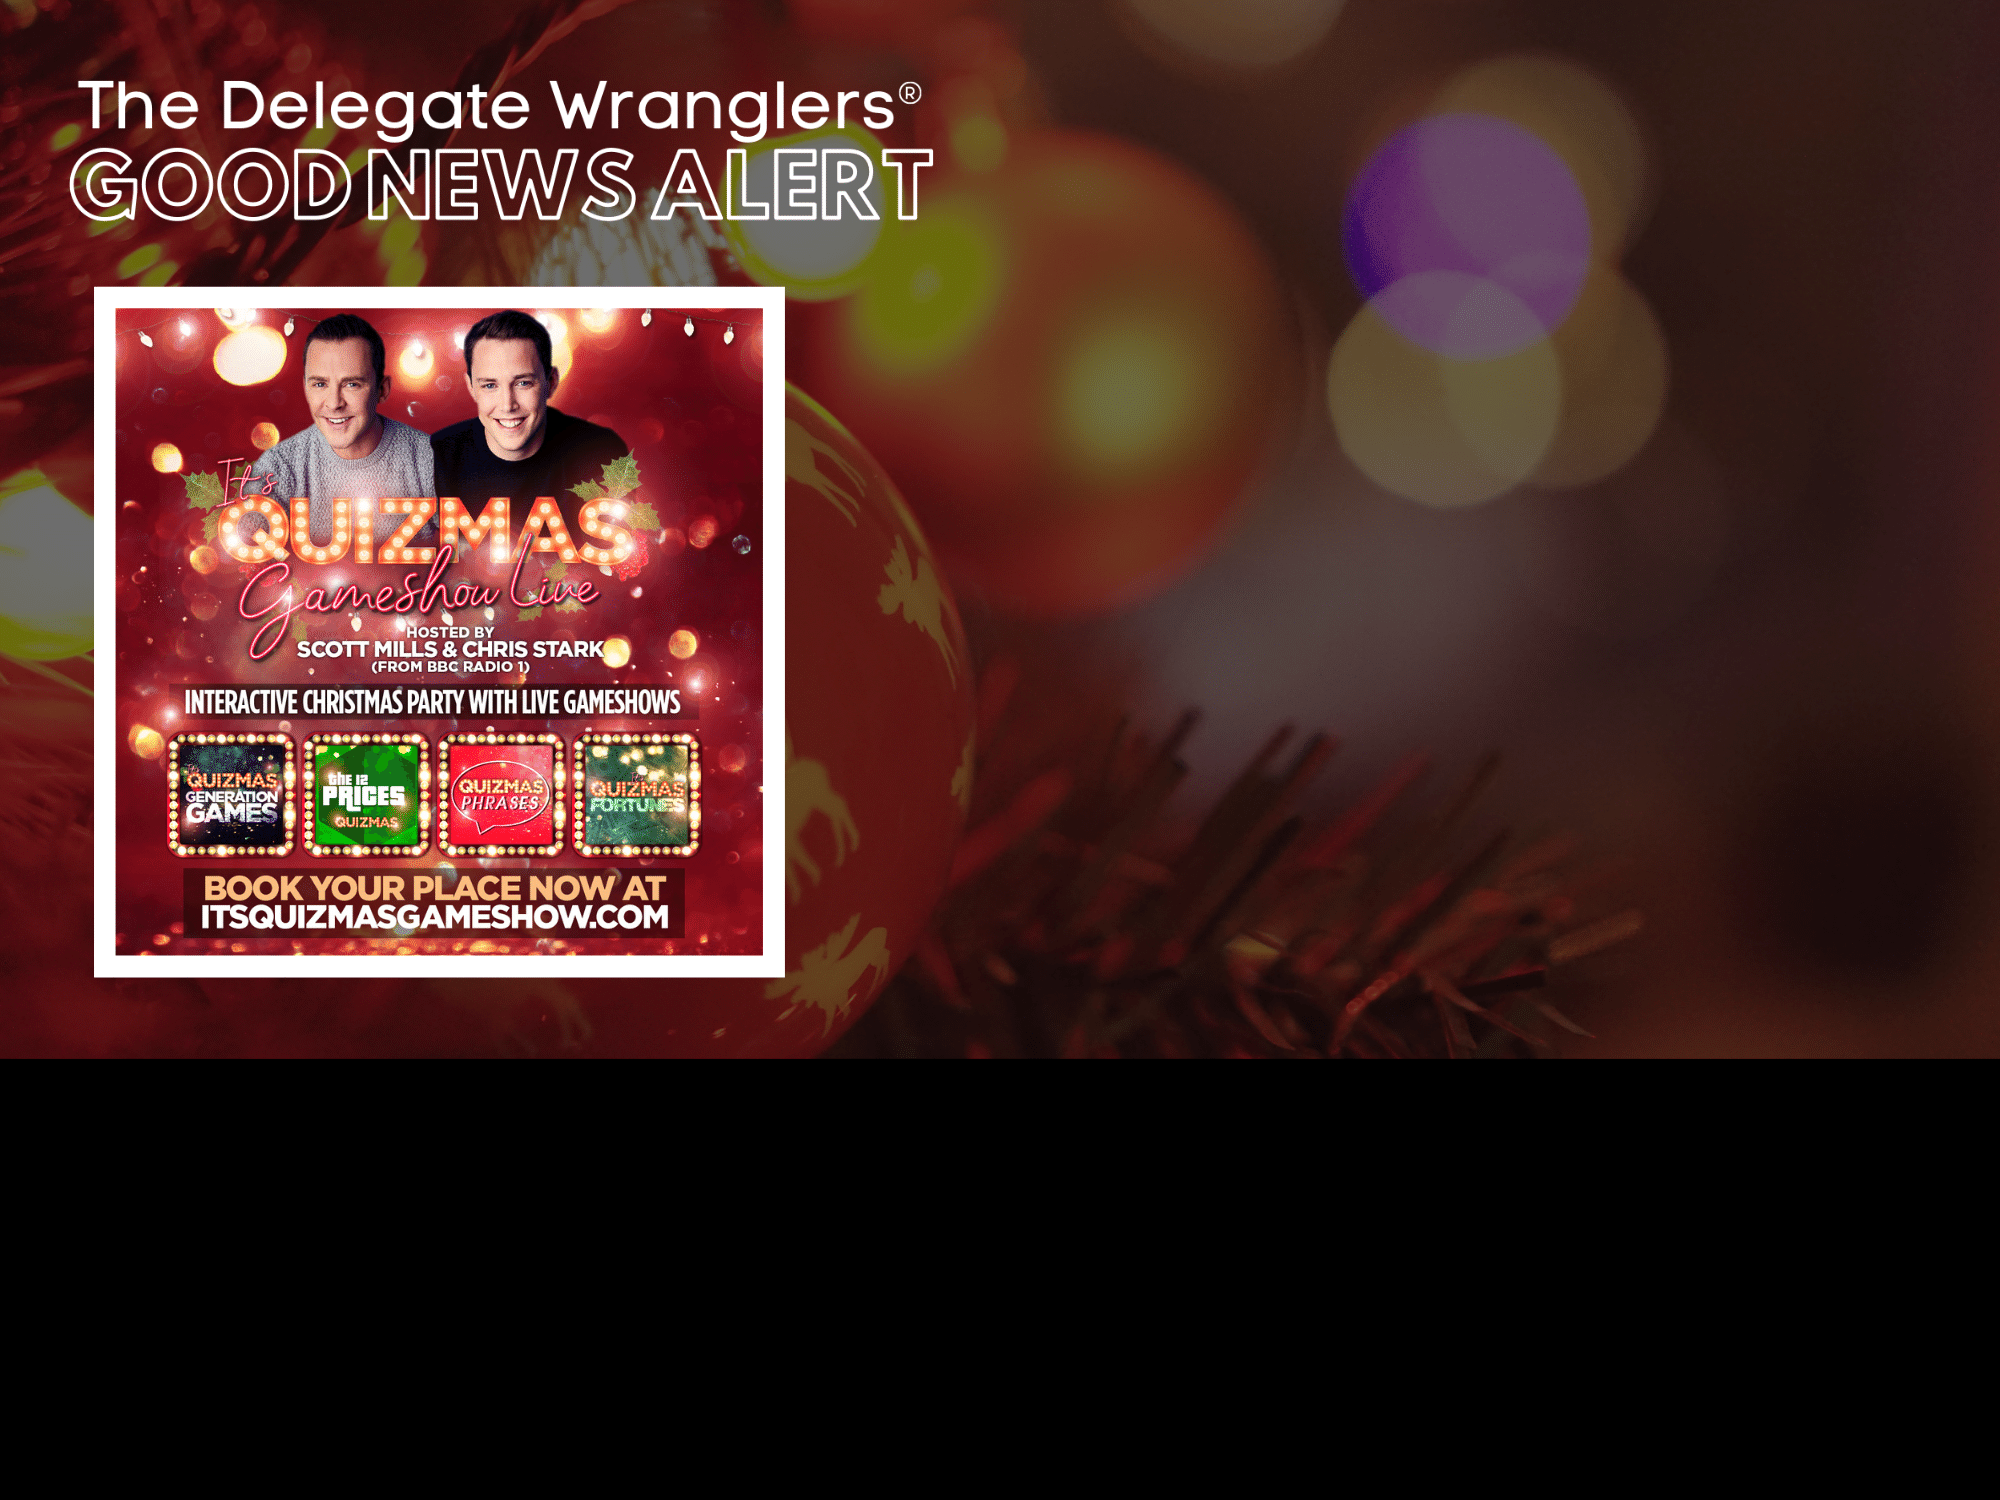 Earn some money before xmas - become a reseller for 'Its Quizmas Gameshow'